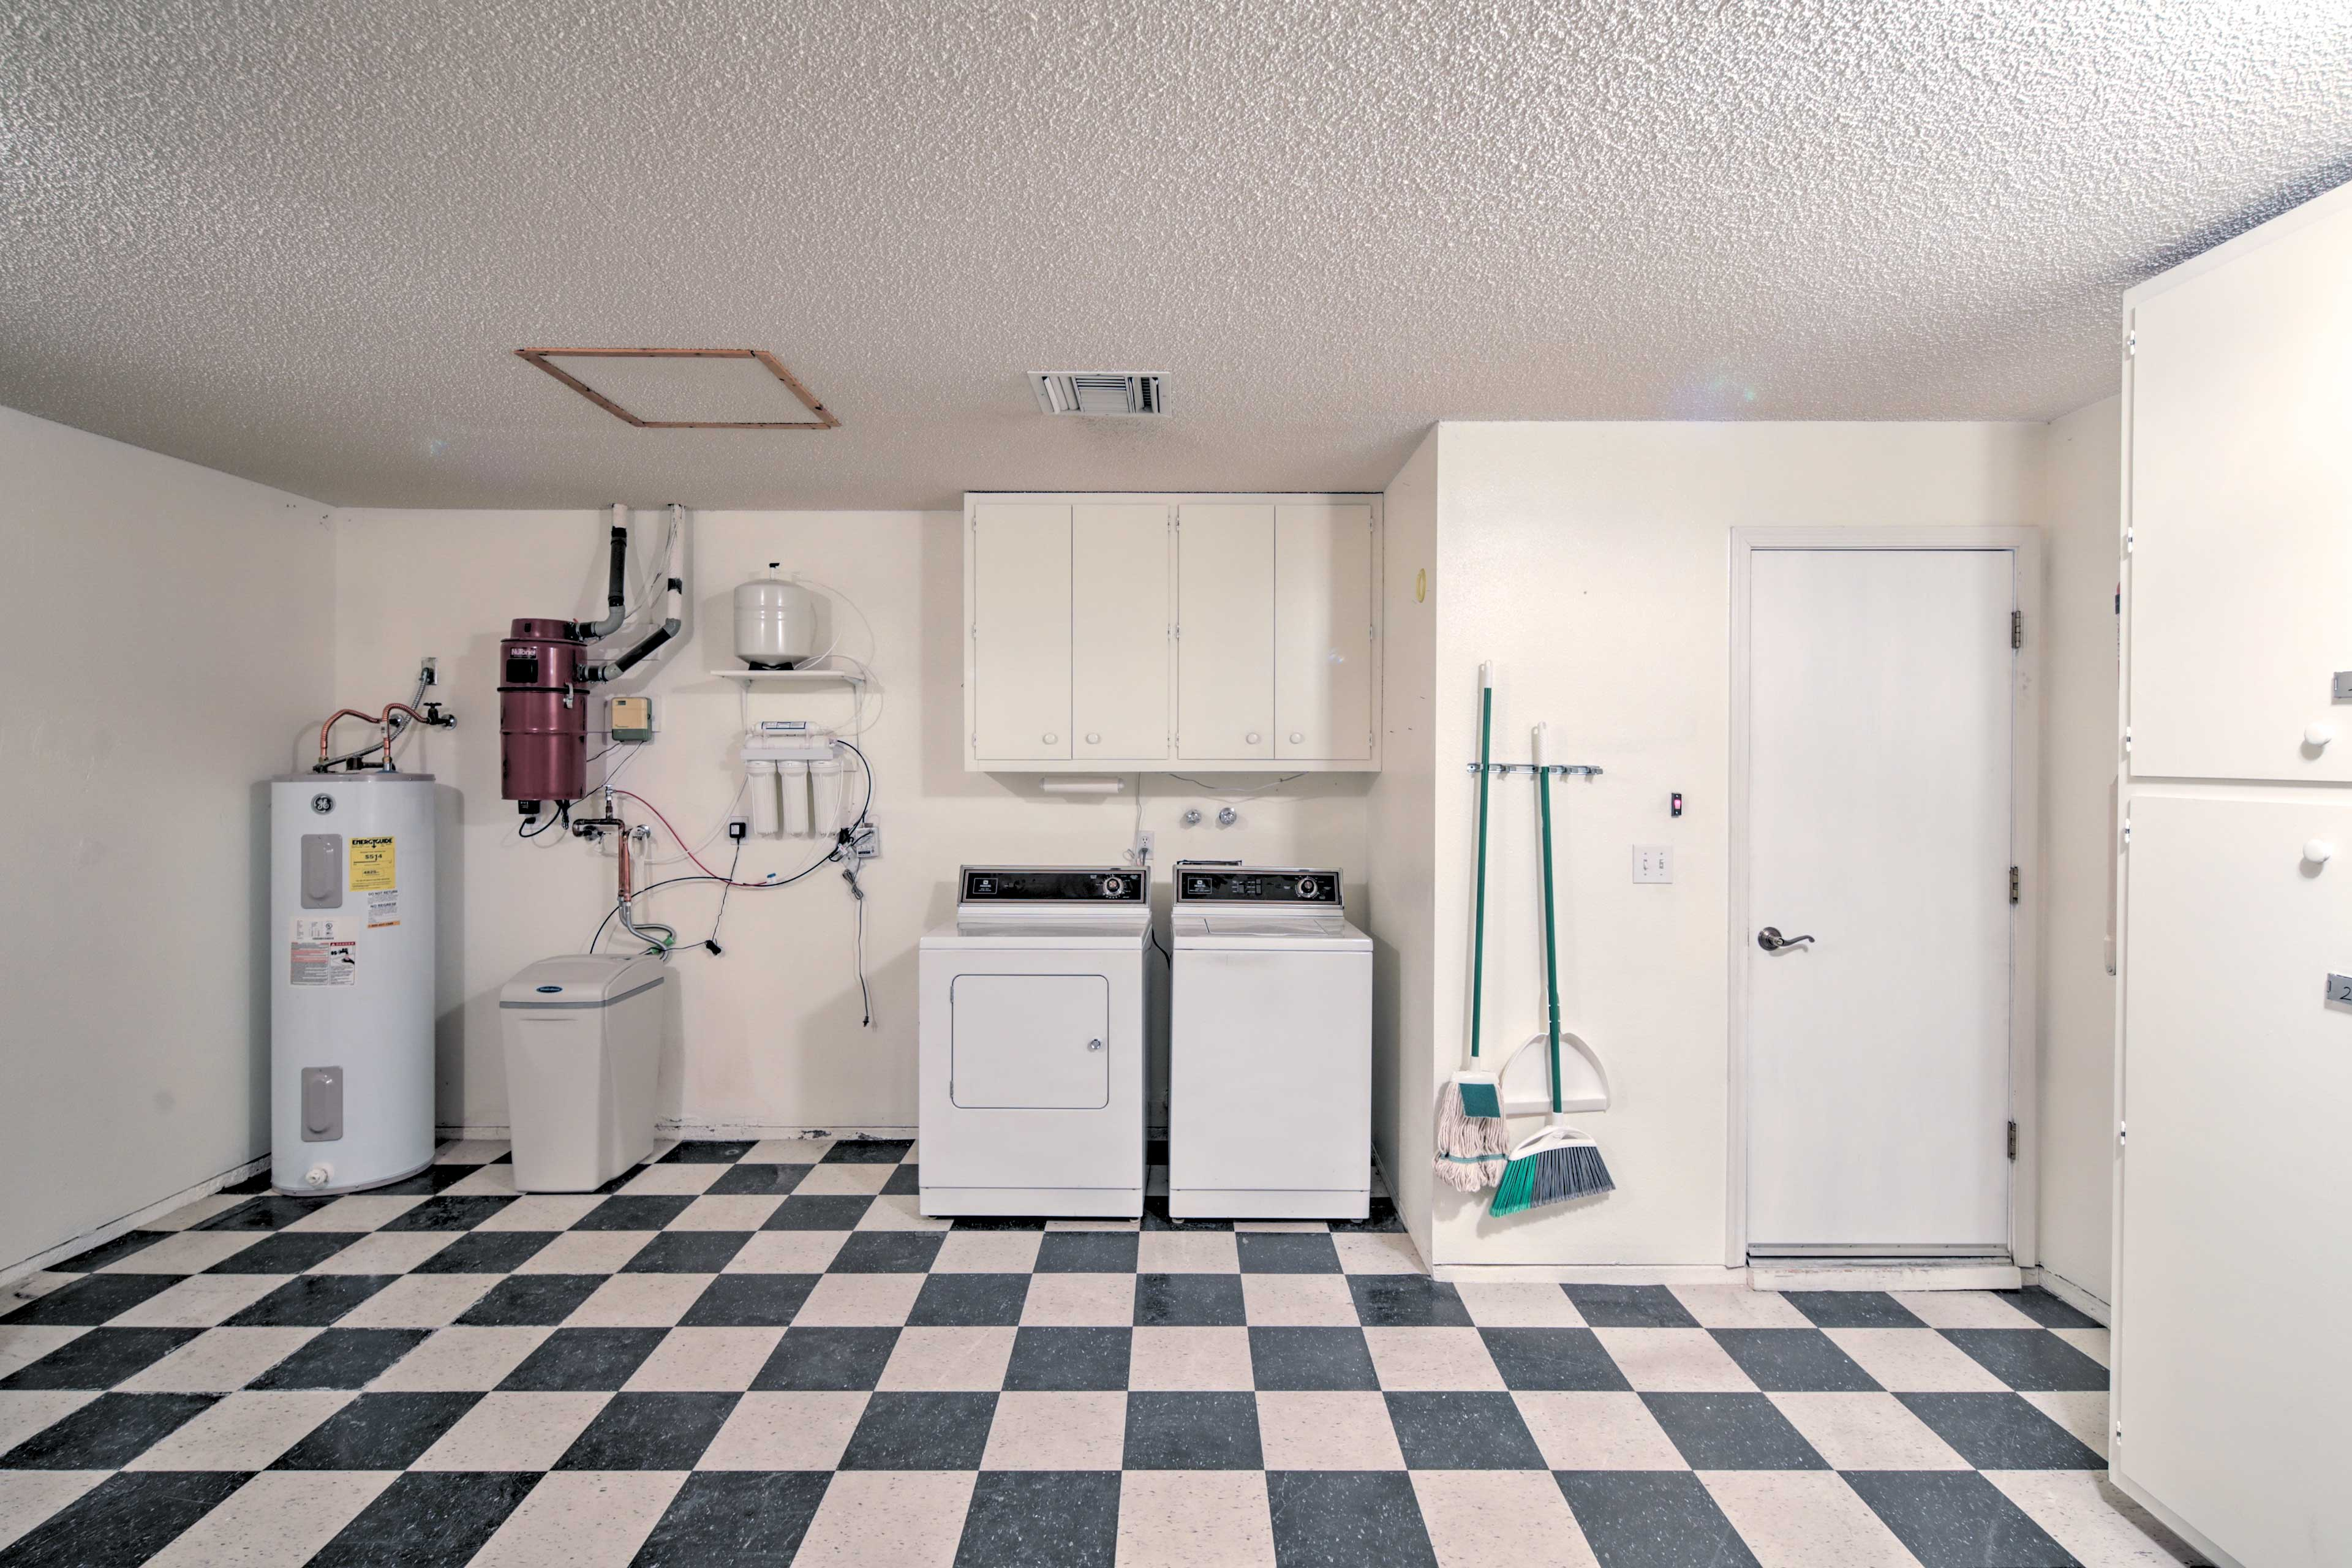 The garage boasts a washer and dryer for your convenience.